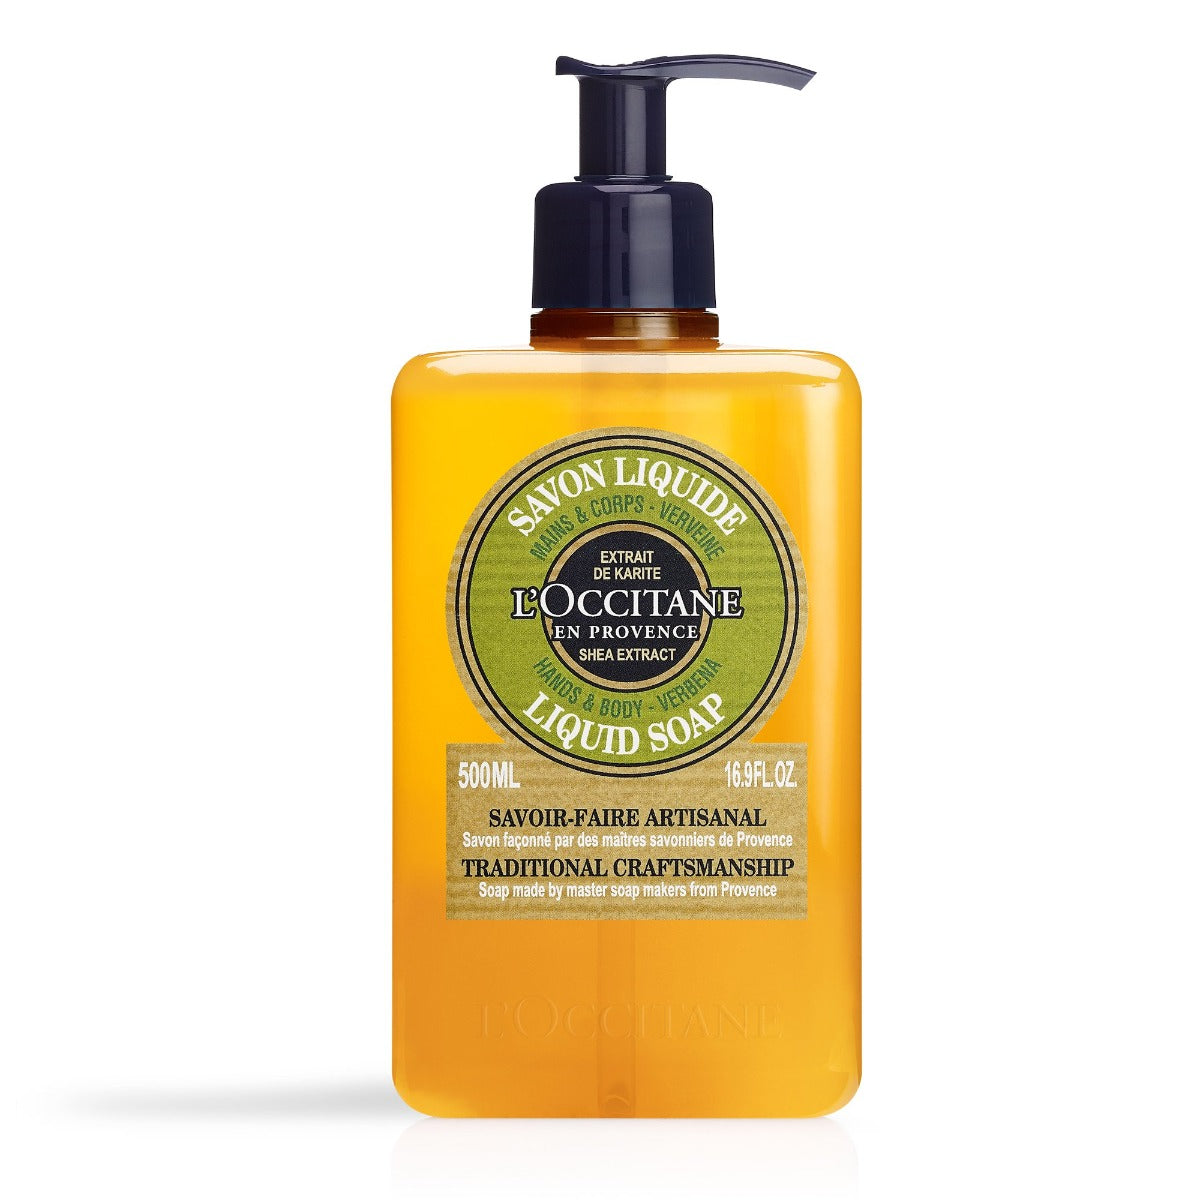 L'Occitane Shea Verbena Hands & Body Liquid Soap 500ml